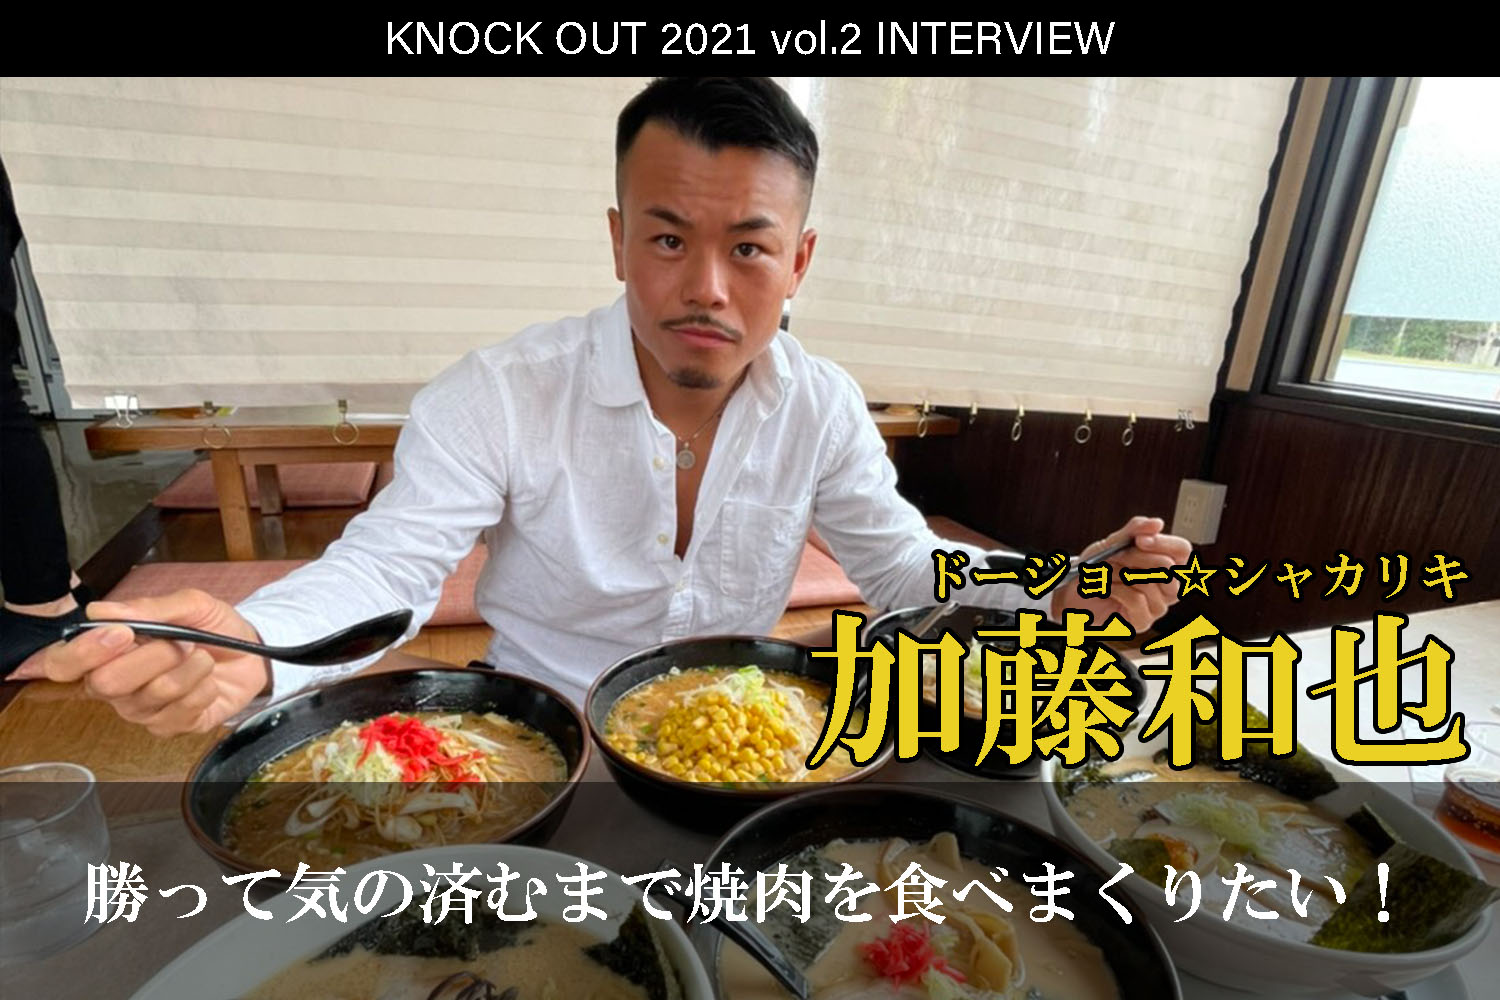 4.25 KNOCK OUT 2021 vol.2|加藤和也インタビュー公開!